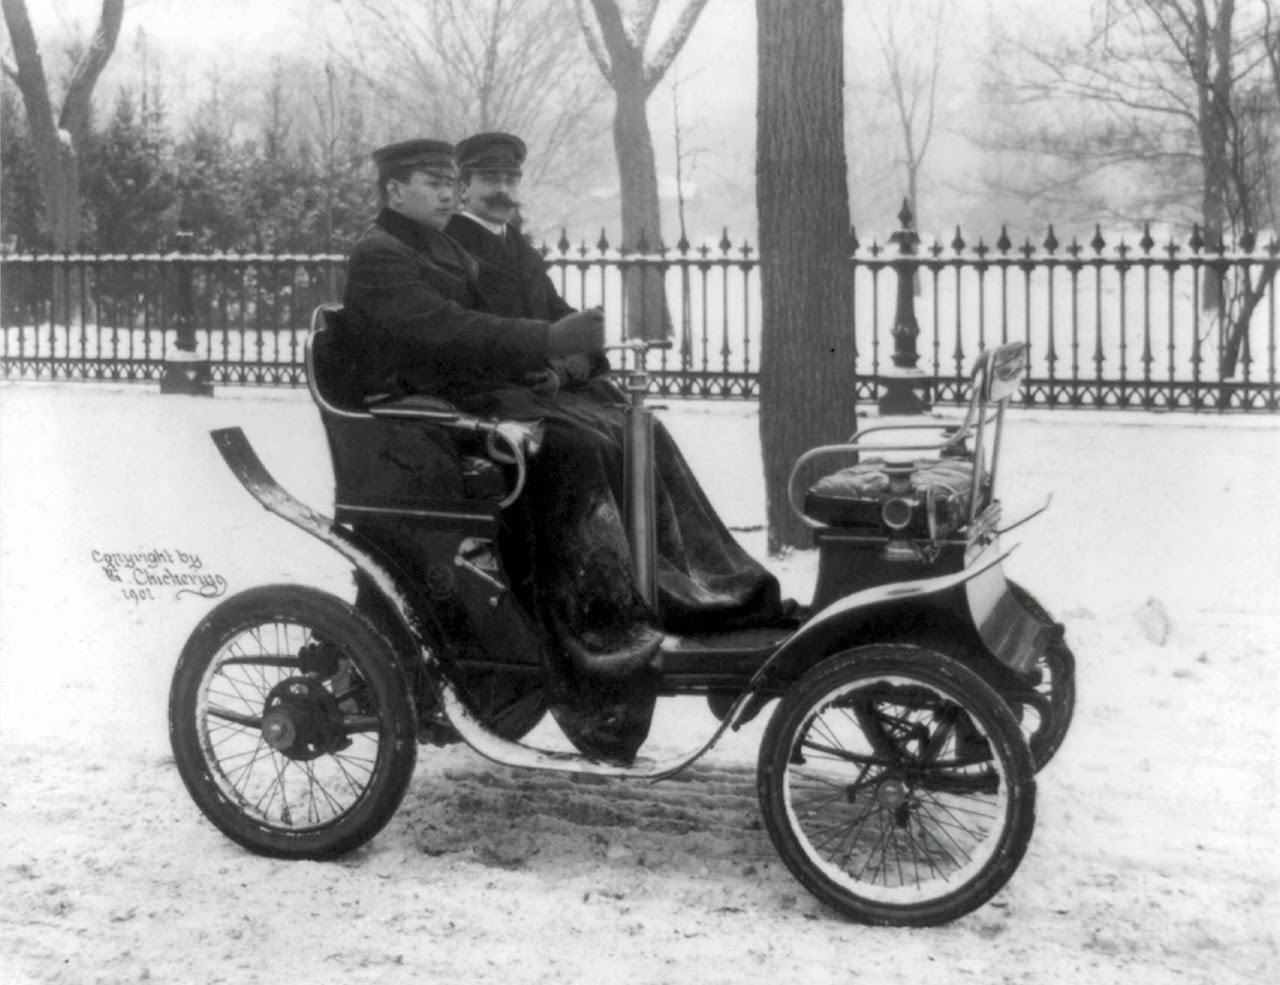 Vintage Photos Of Early American Automobiles From The